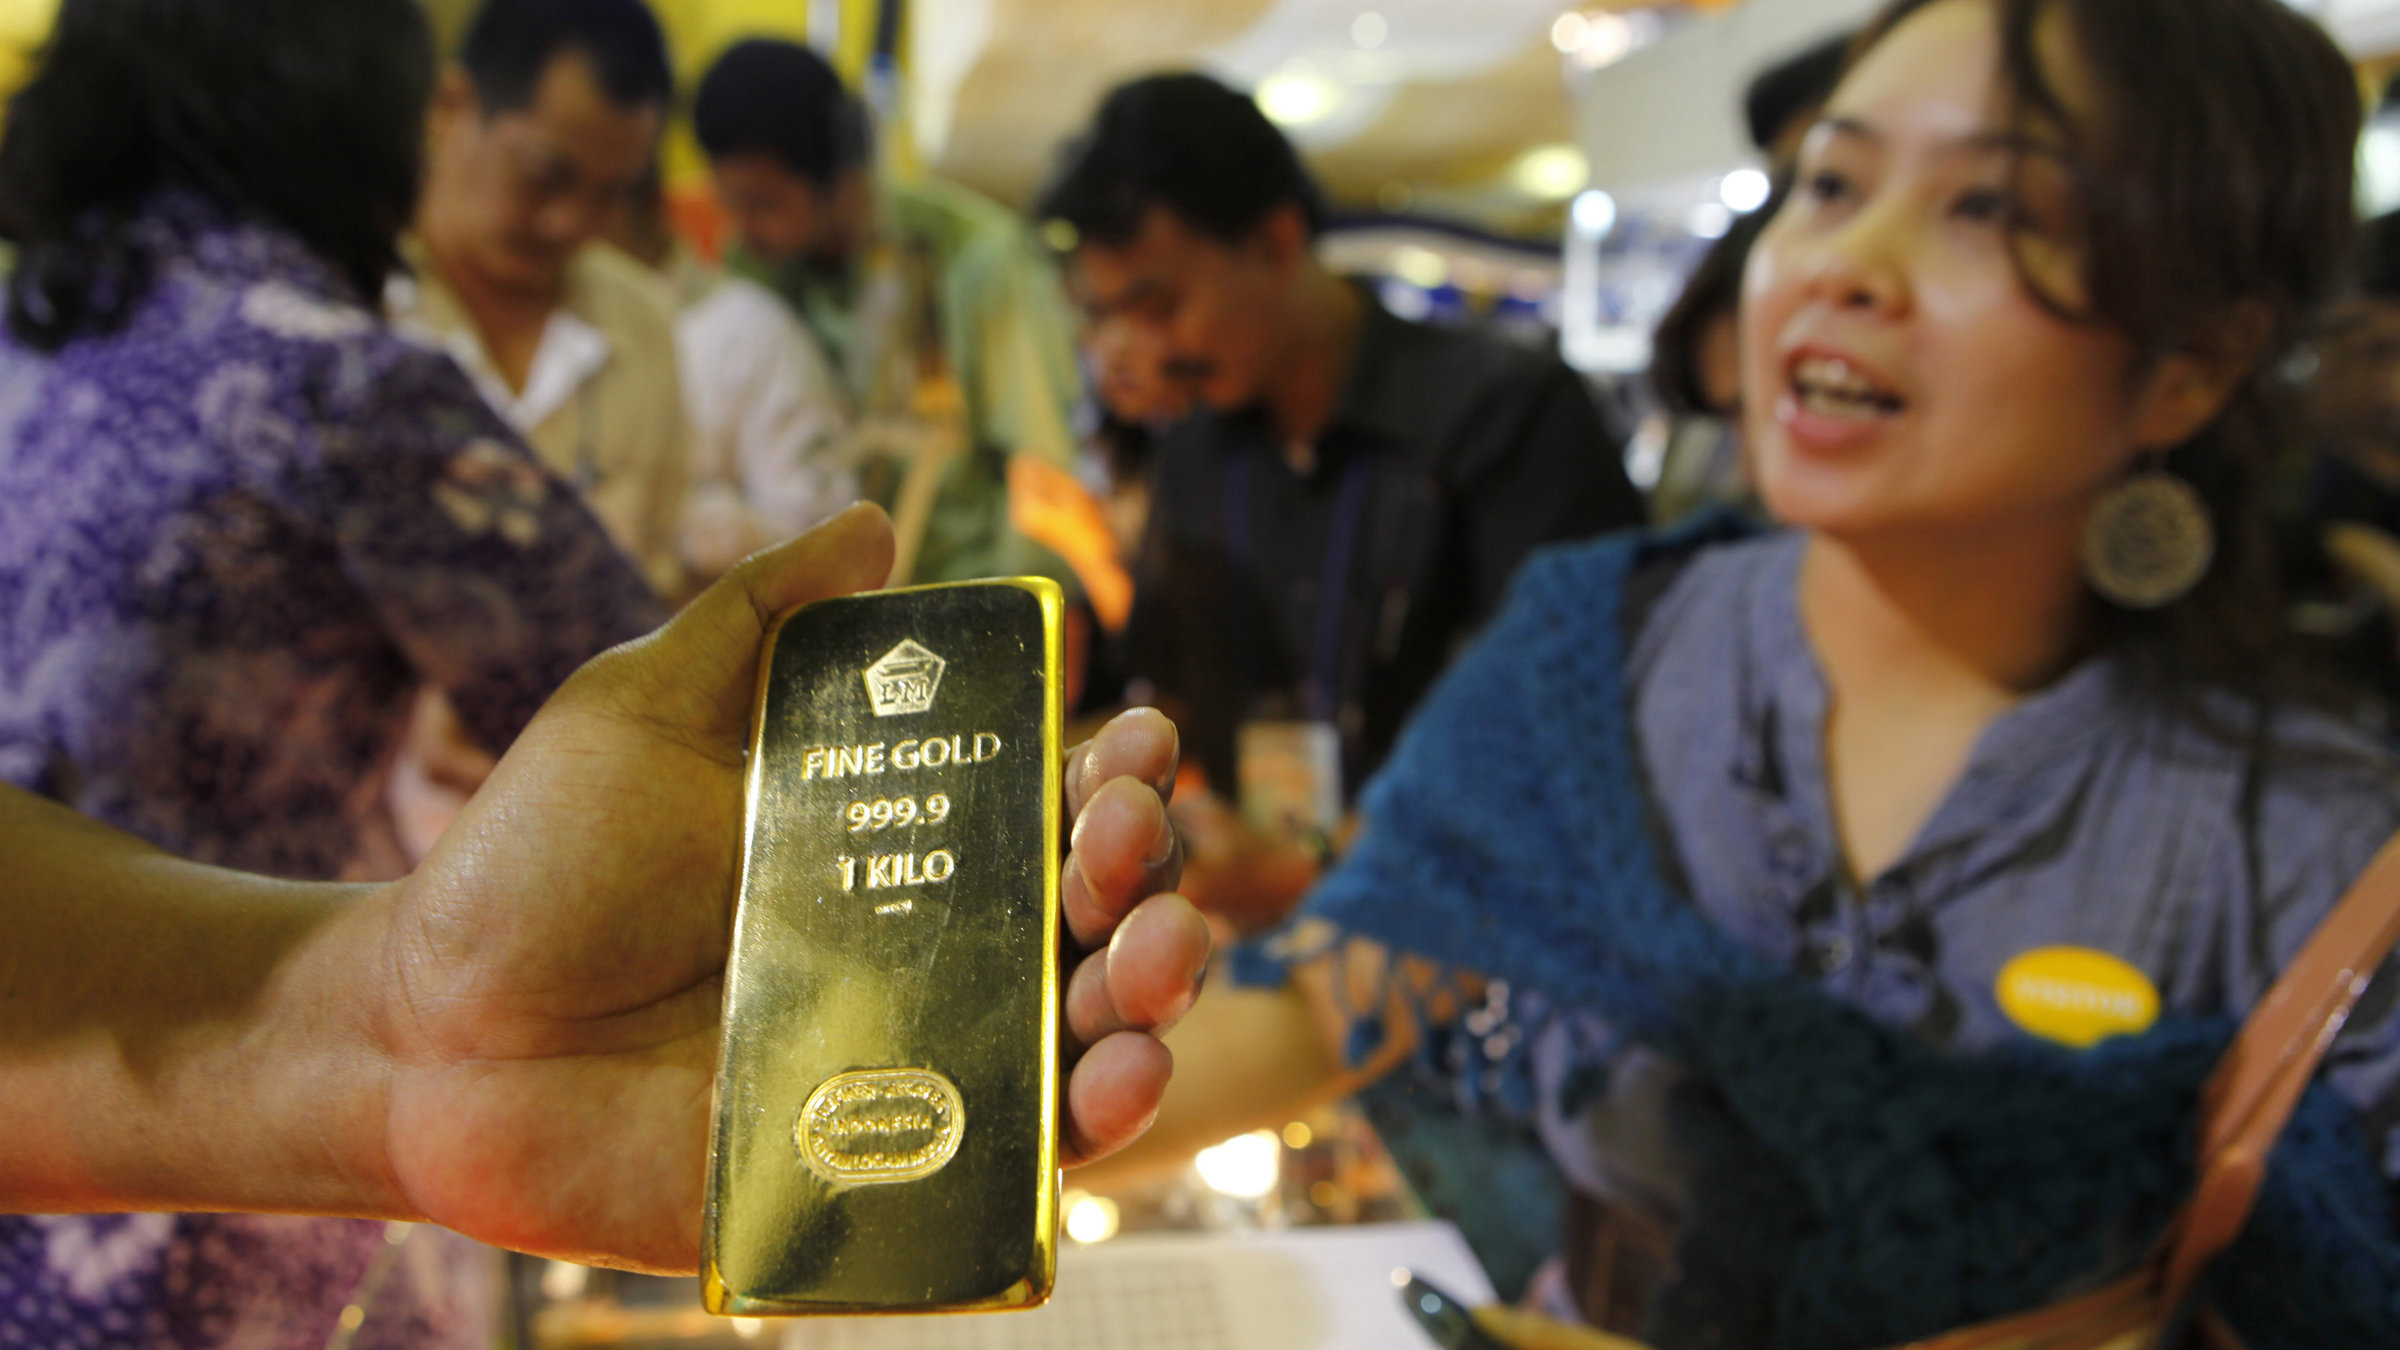 A man shows a gold bar to customers at a Jewellery Expo in Jakarta.